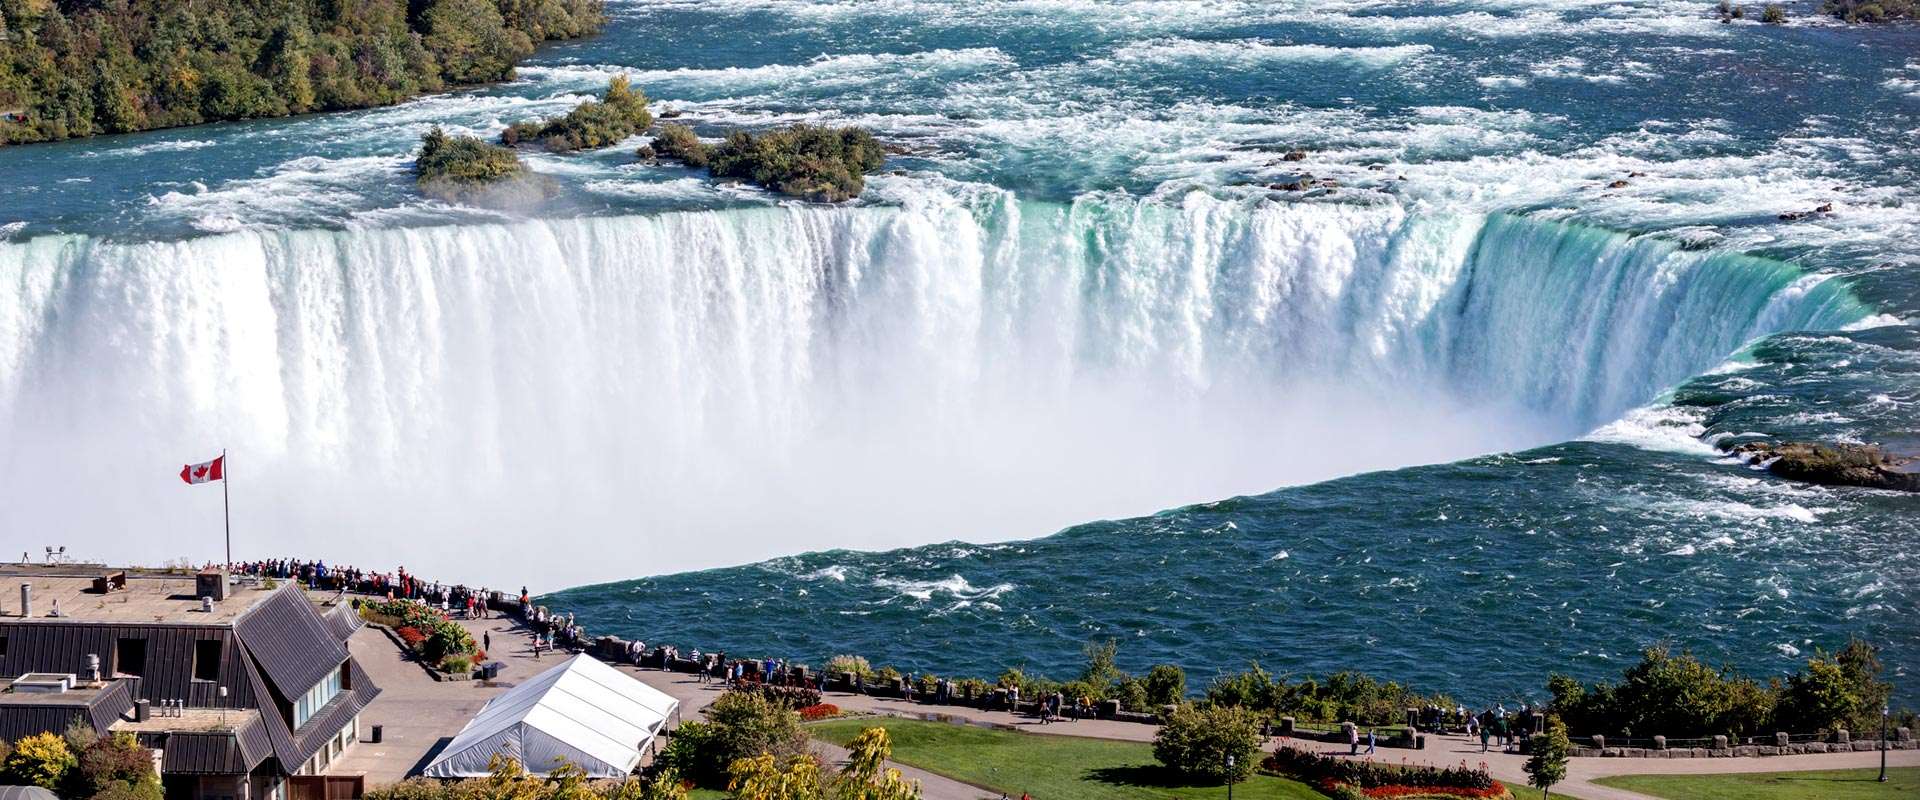 Is Niagara Falls Open Now